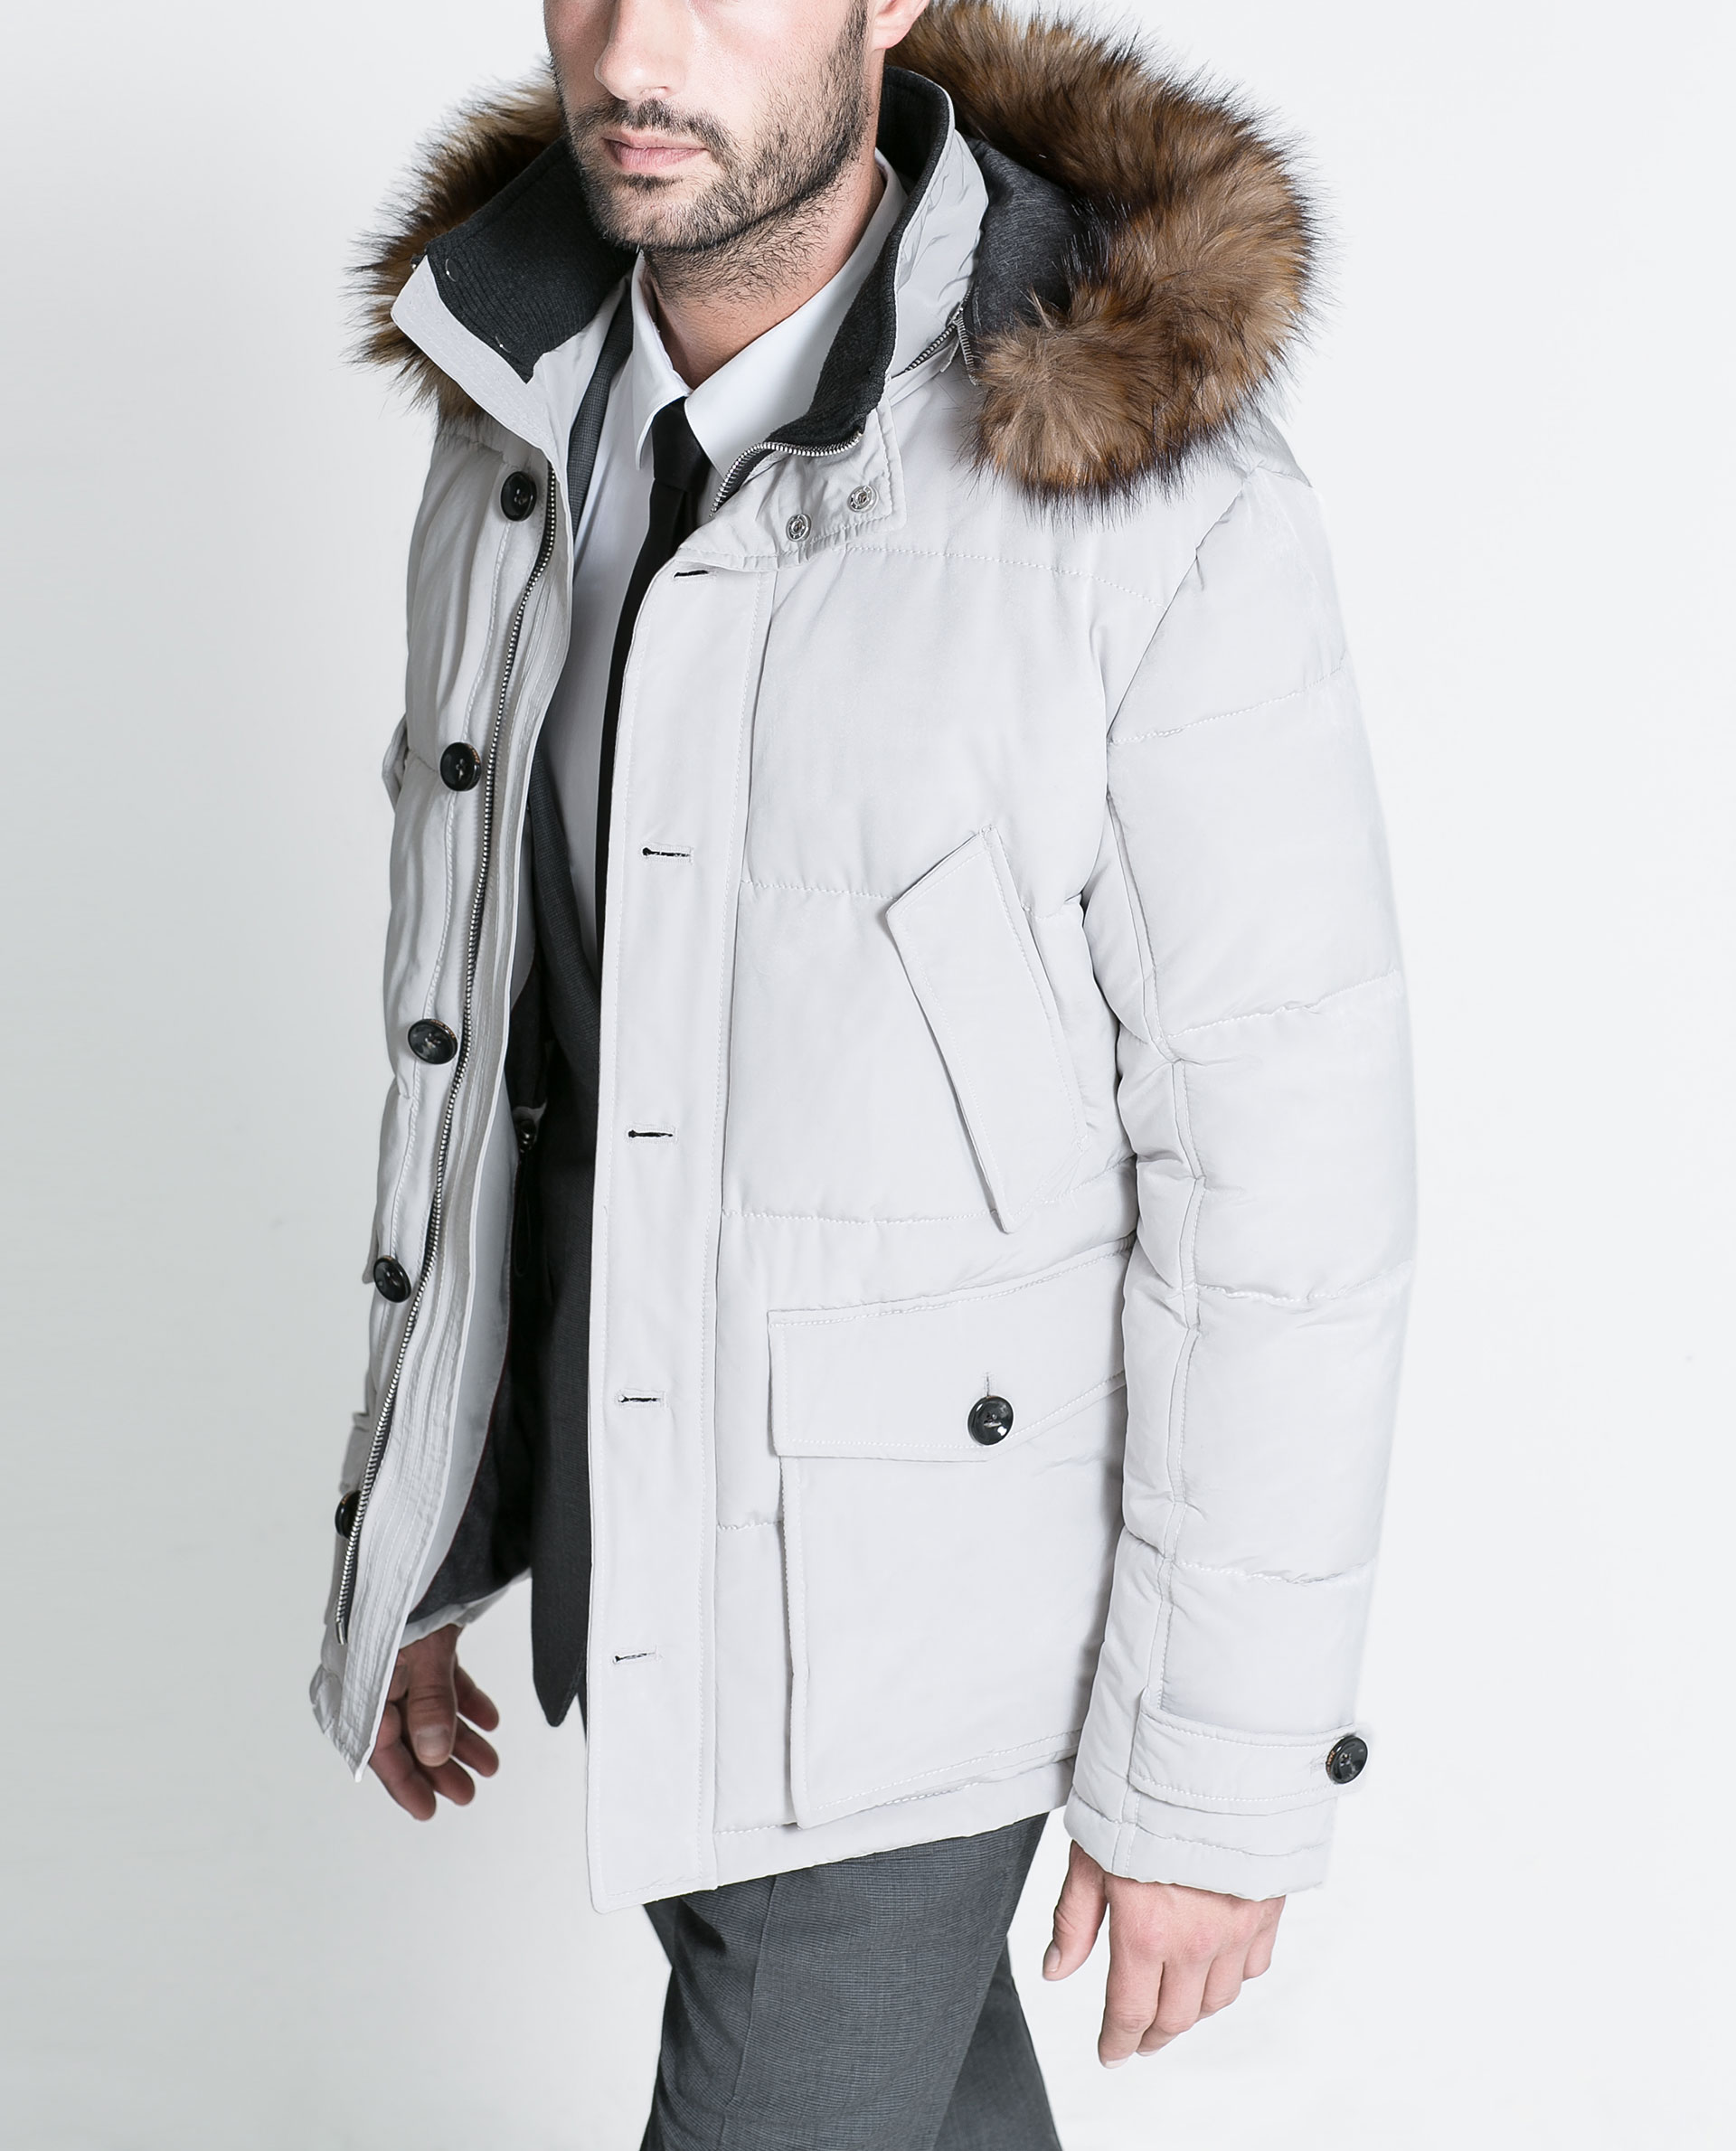 White Coat With Fur Hood - JacketIn